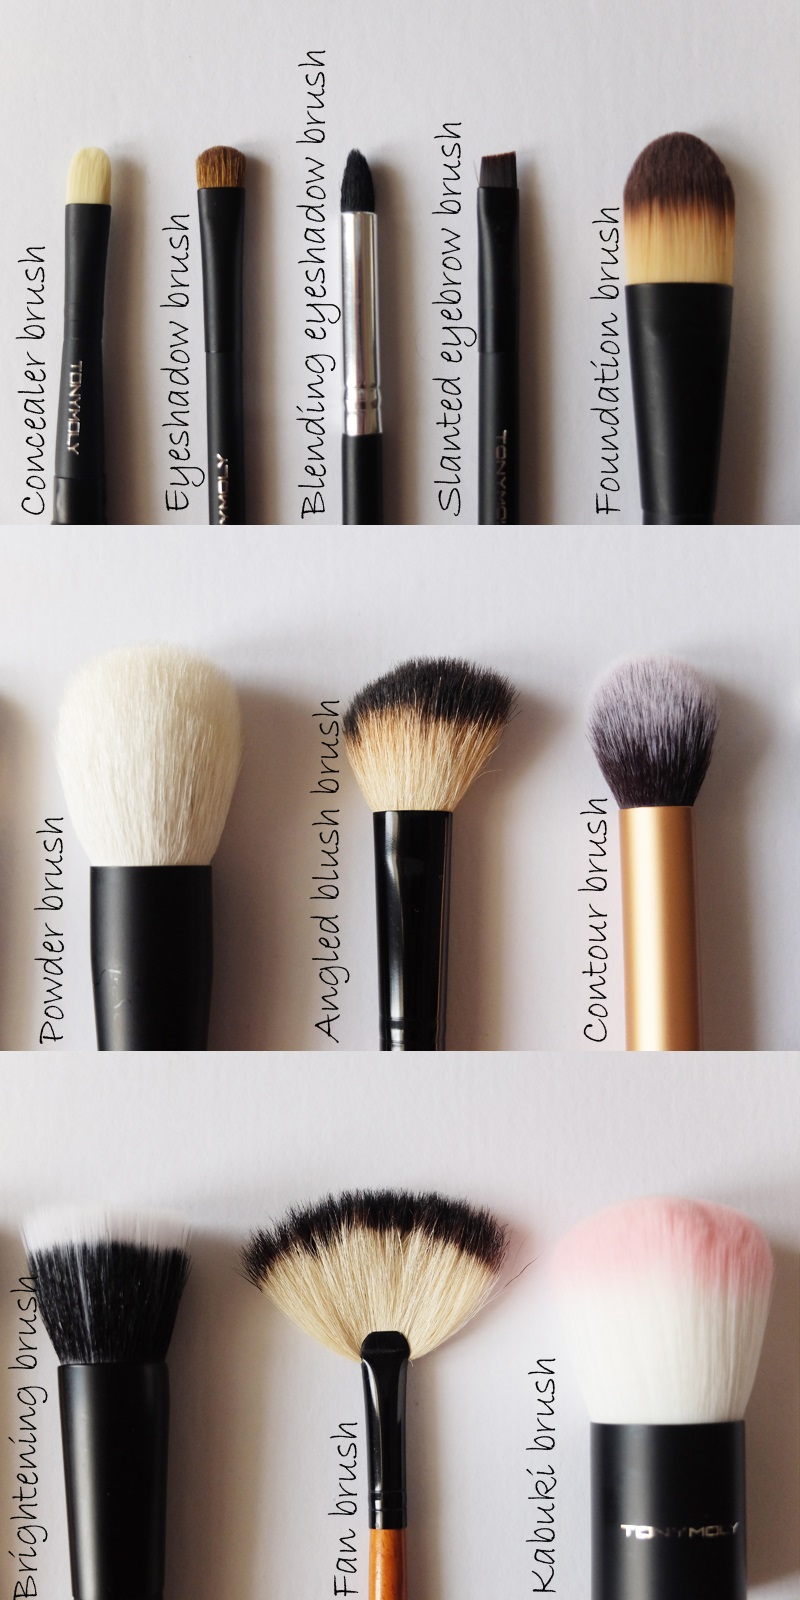 Makeup Brushes Sponge Collection: List Of All Makeup Brushes And Their Uses